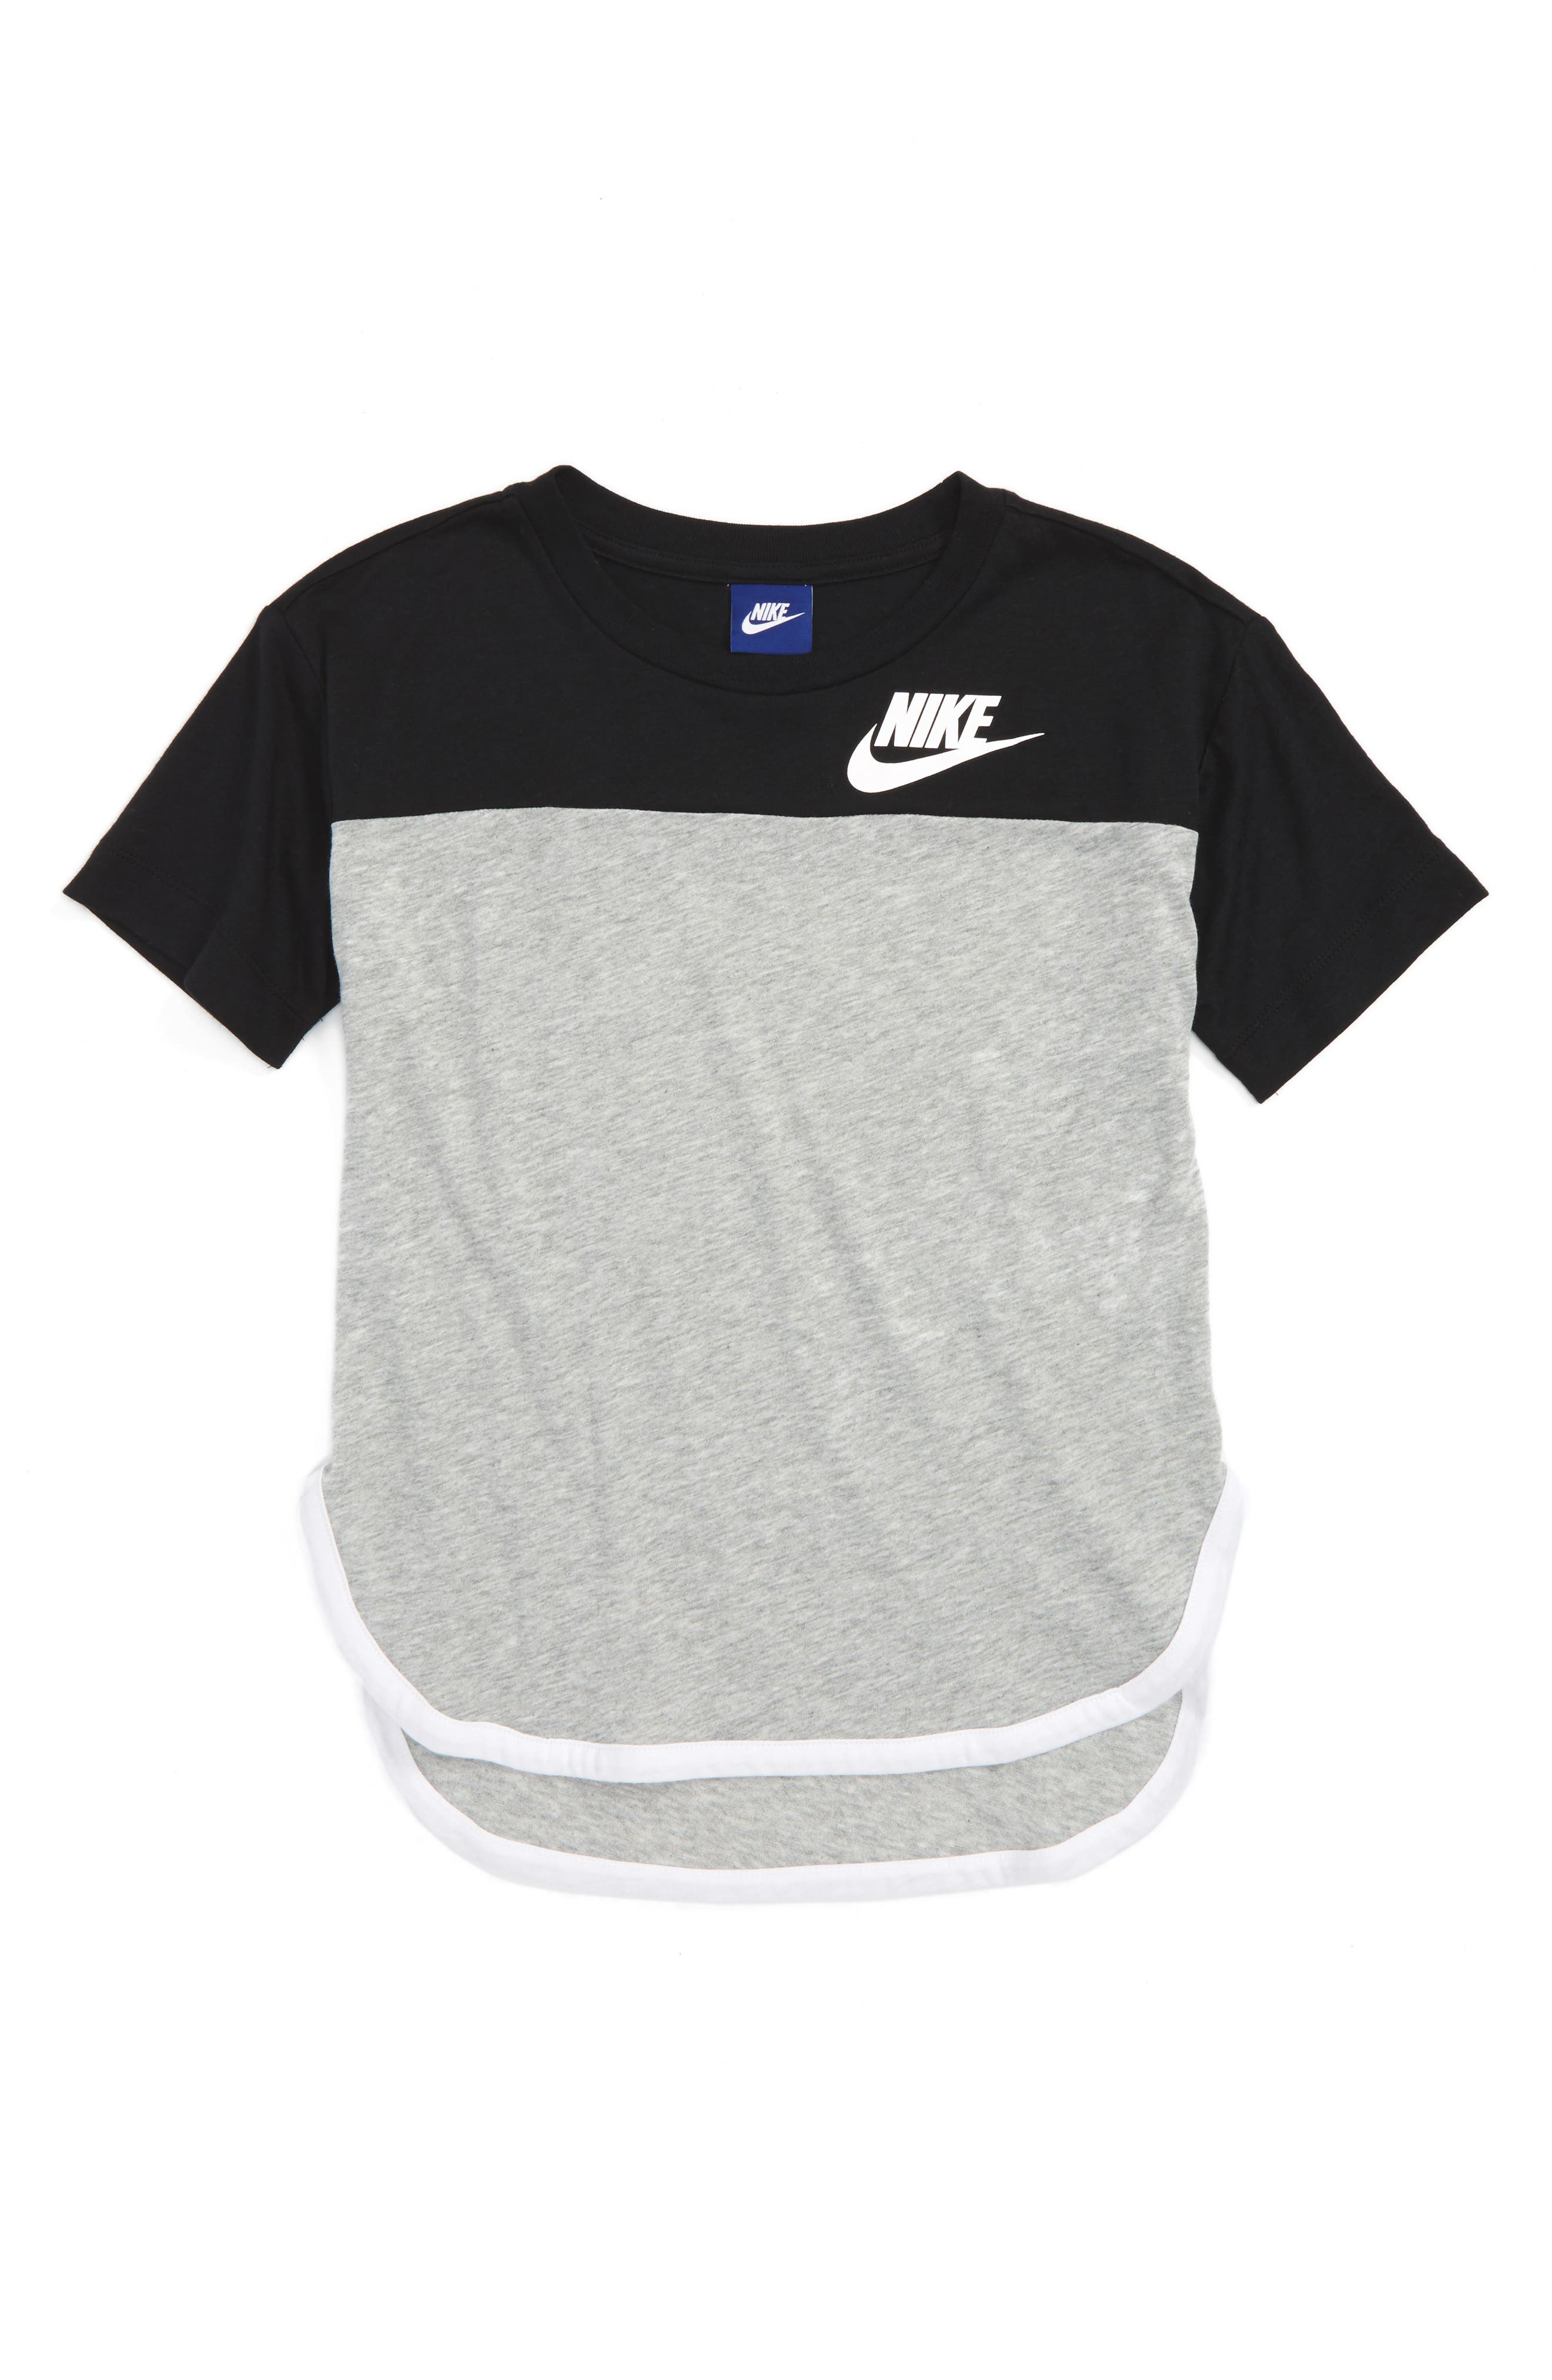 Sportswear Graphic Tee,                         Main,                         color, Black/ Dk Grey Heather/ White